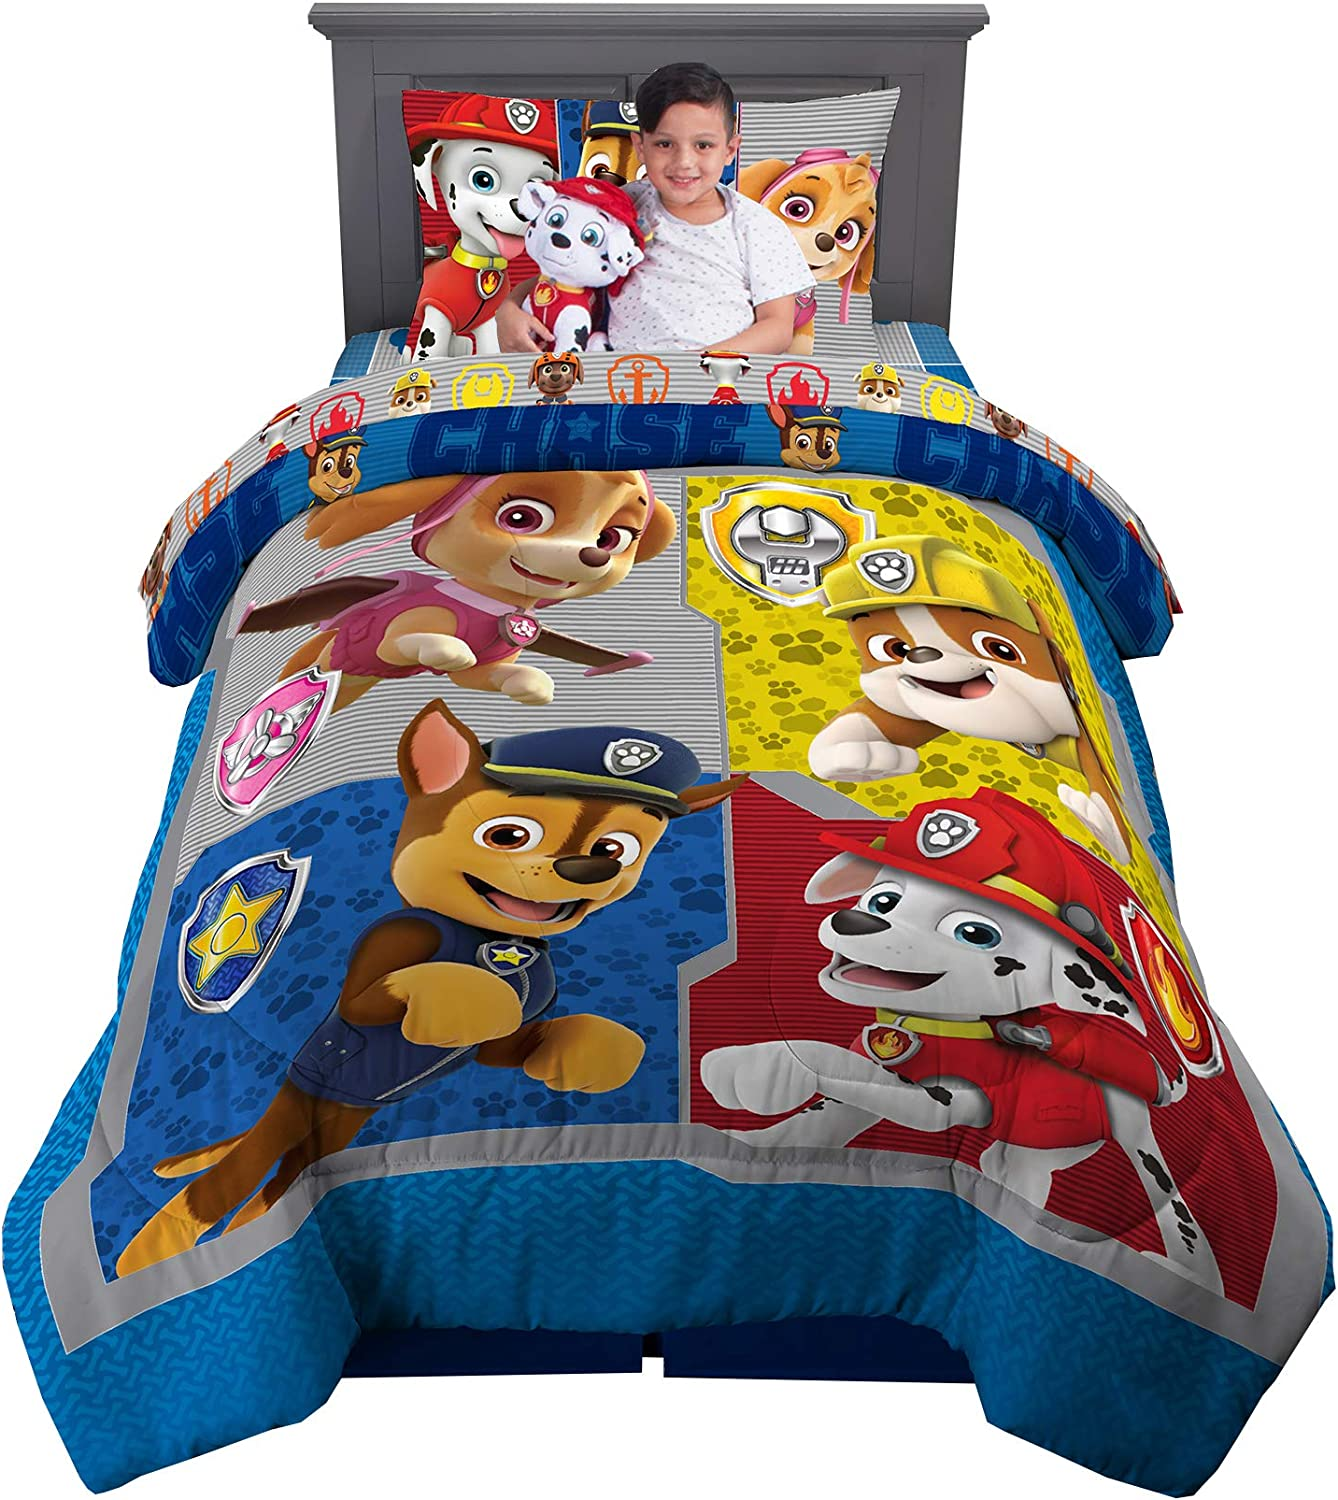 Franco Kids Bedding Super Soft and Phoenix Mall with Sheets Comforter Max 71% OFF Cuddle